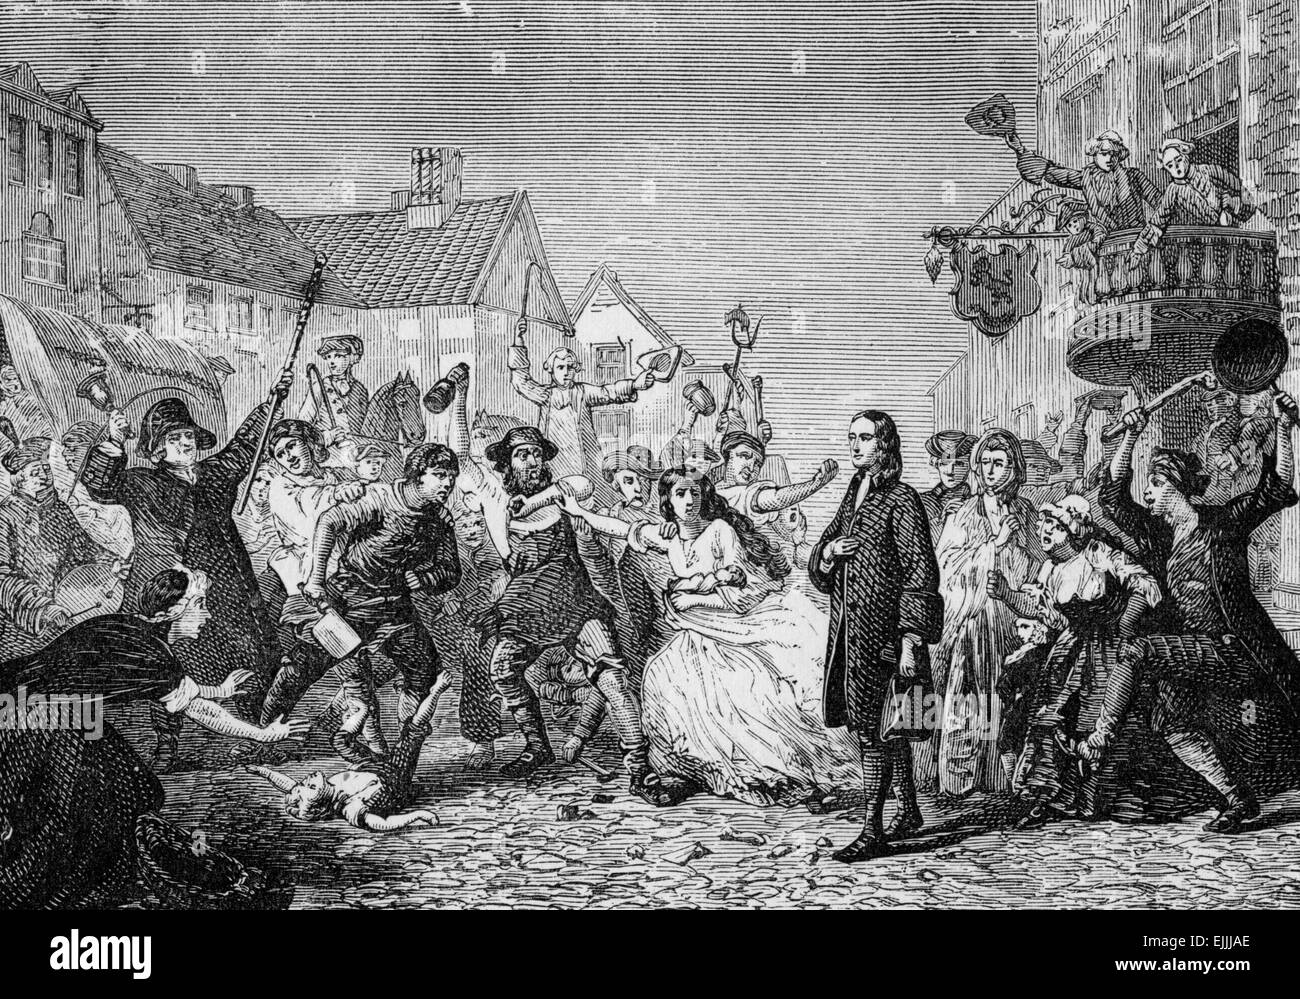 John Wesley in the midst of the riots of 1743 in Wednesbury, England,when local people tried to force him to stop - Stock Image